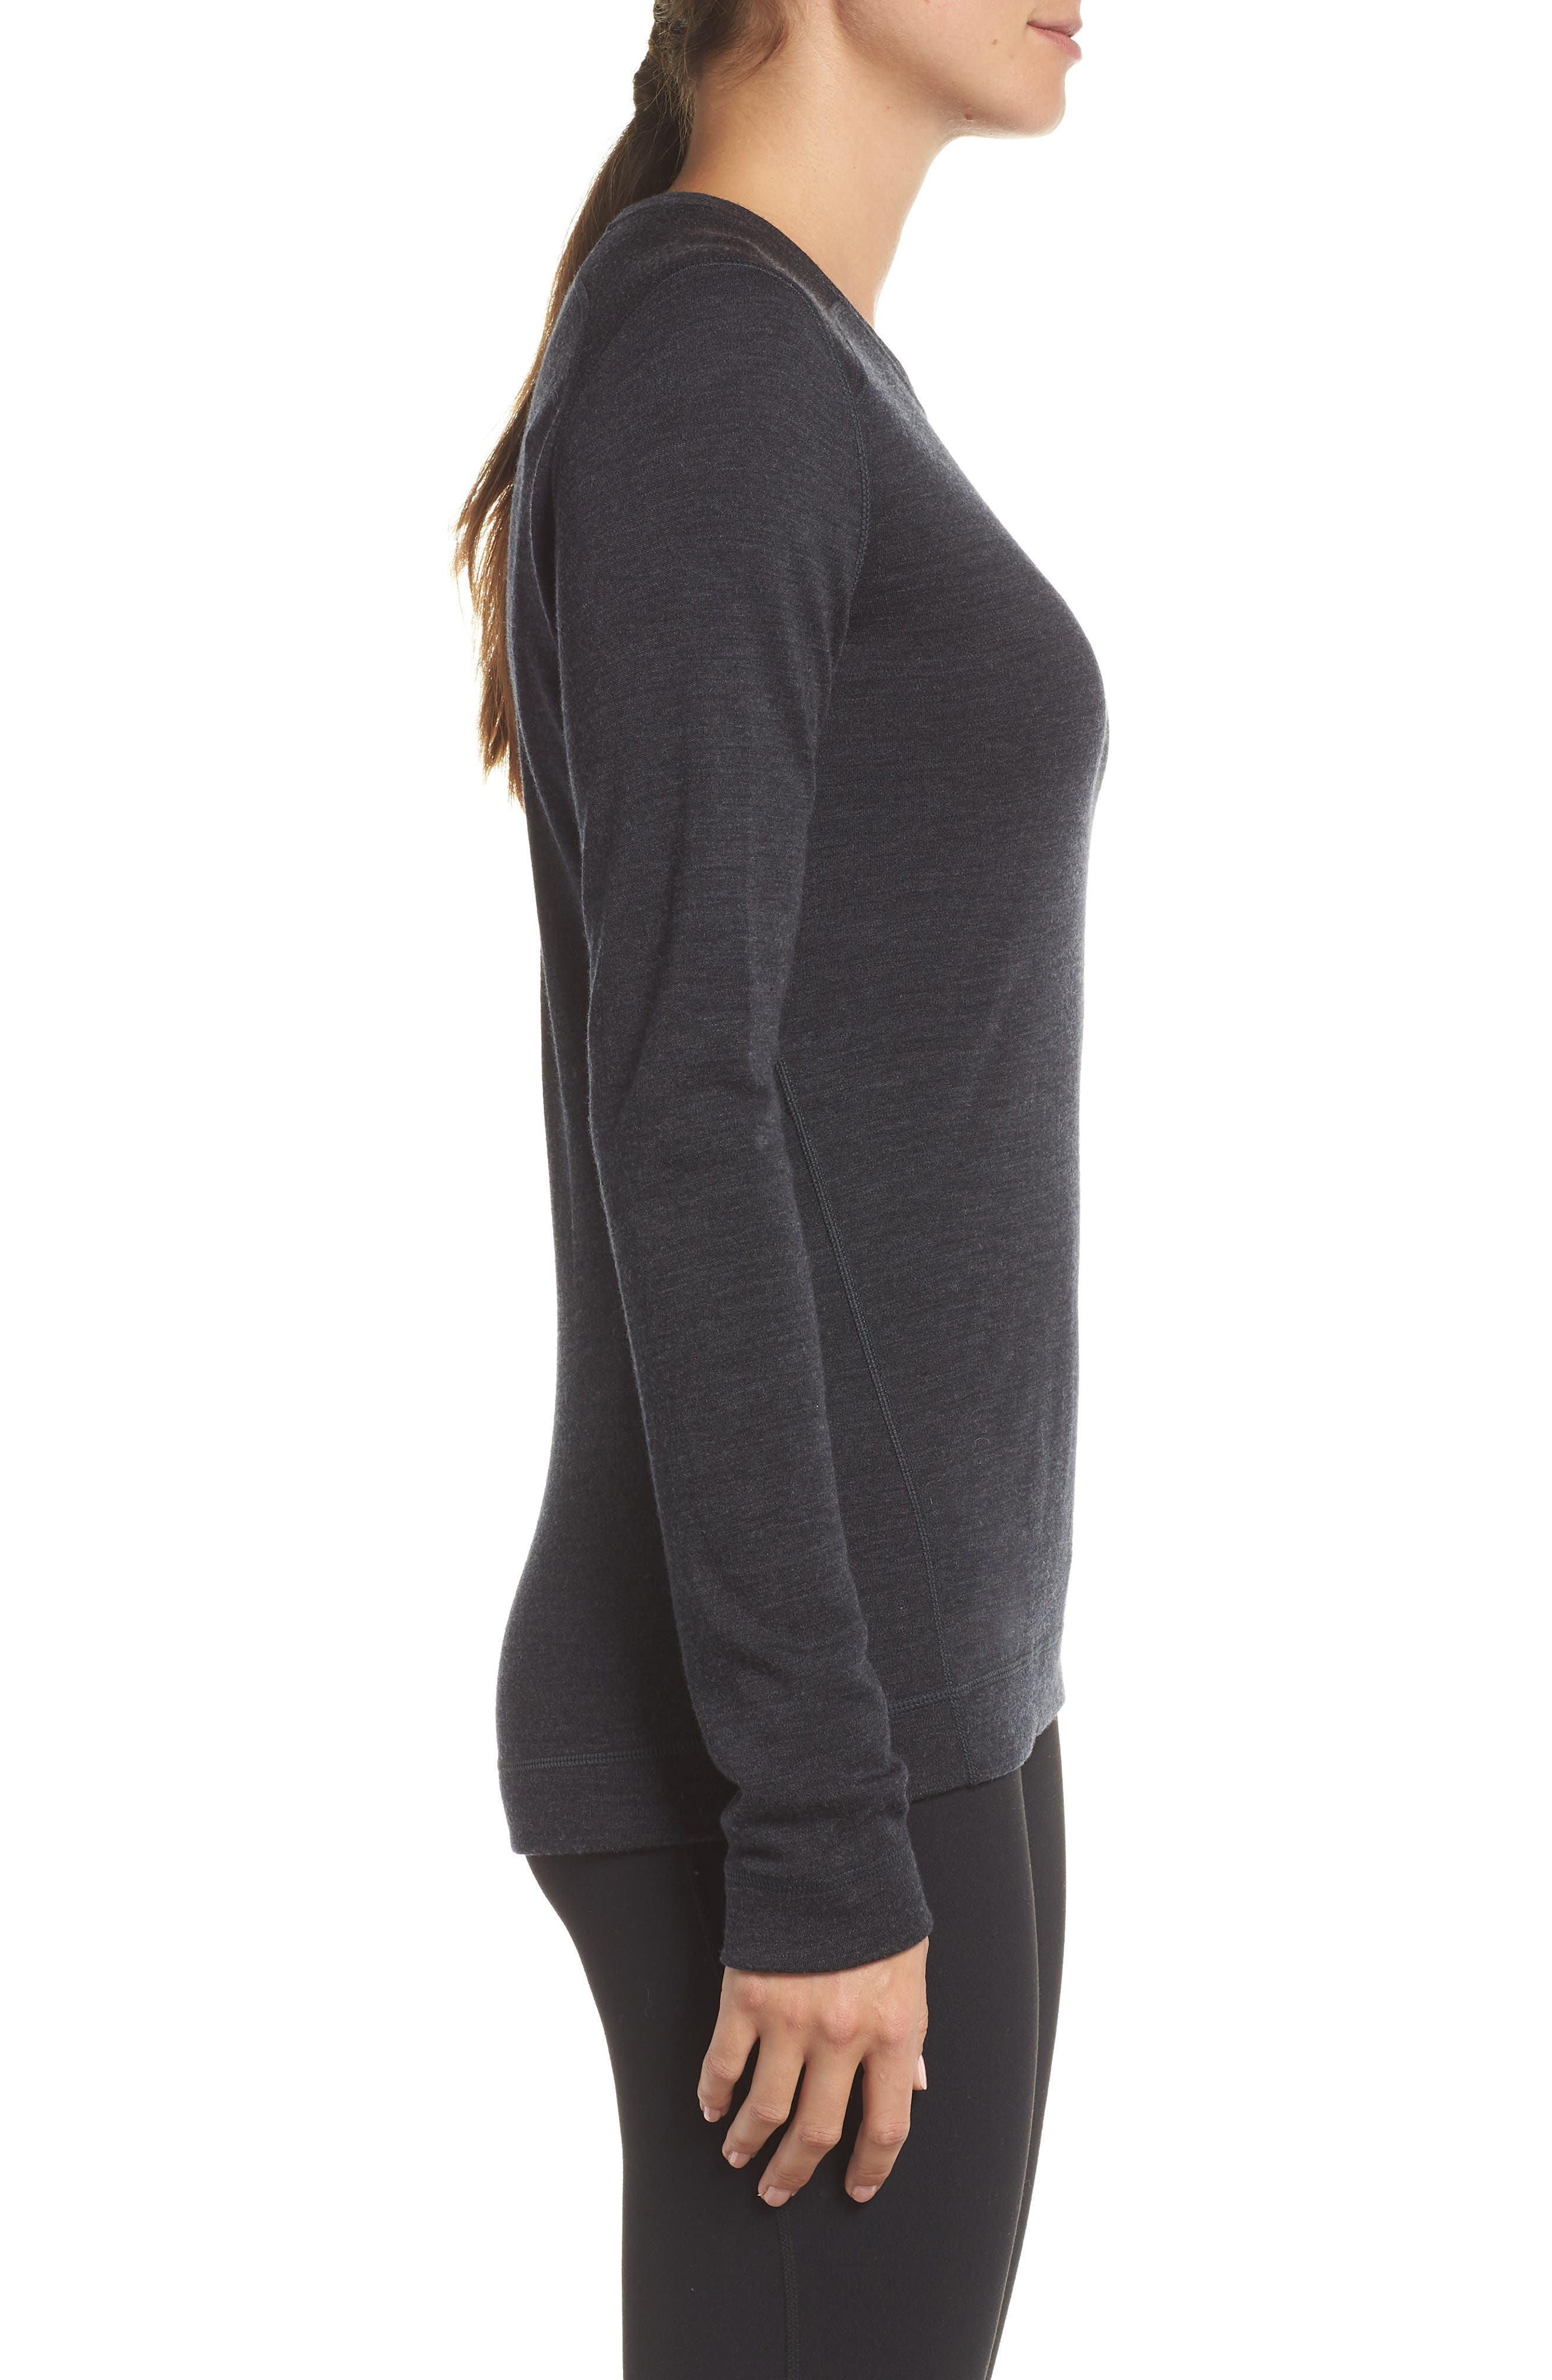 Merino 250 Base Layer Crew Top,                             Alternate thumbnail 3, color,                             CHARCOAL HEATHER